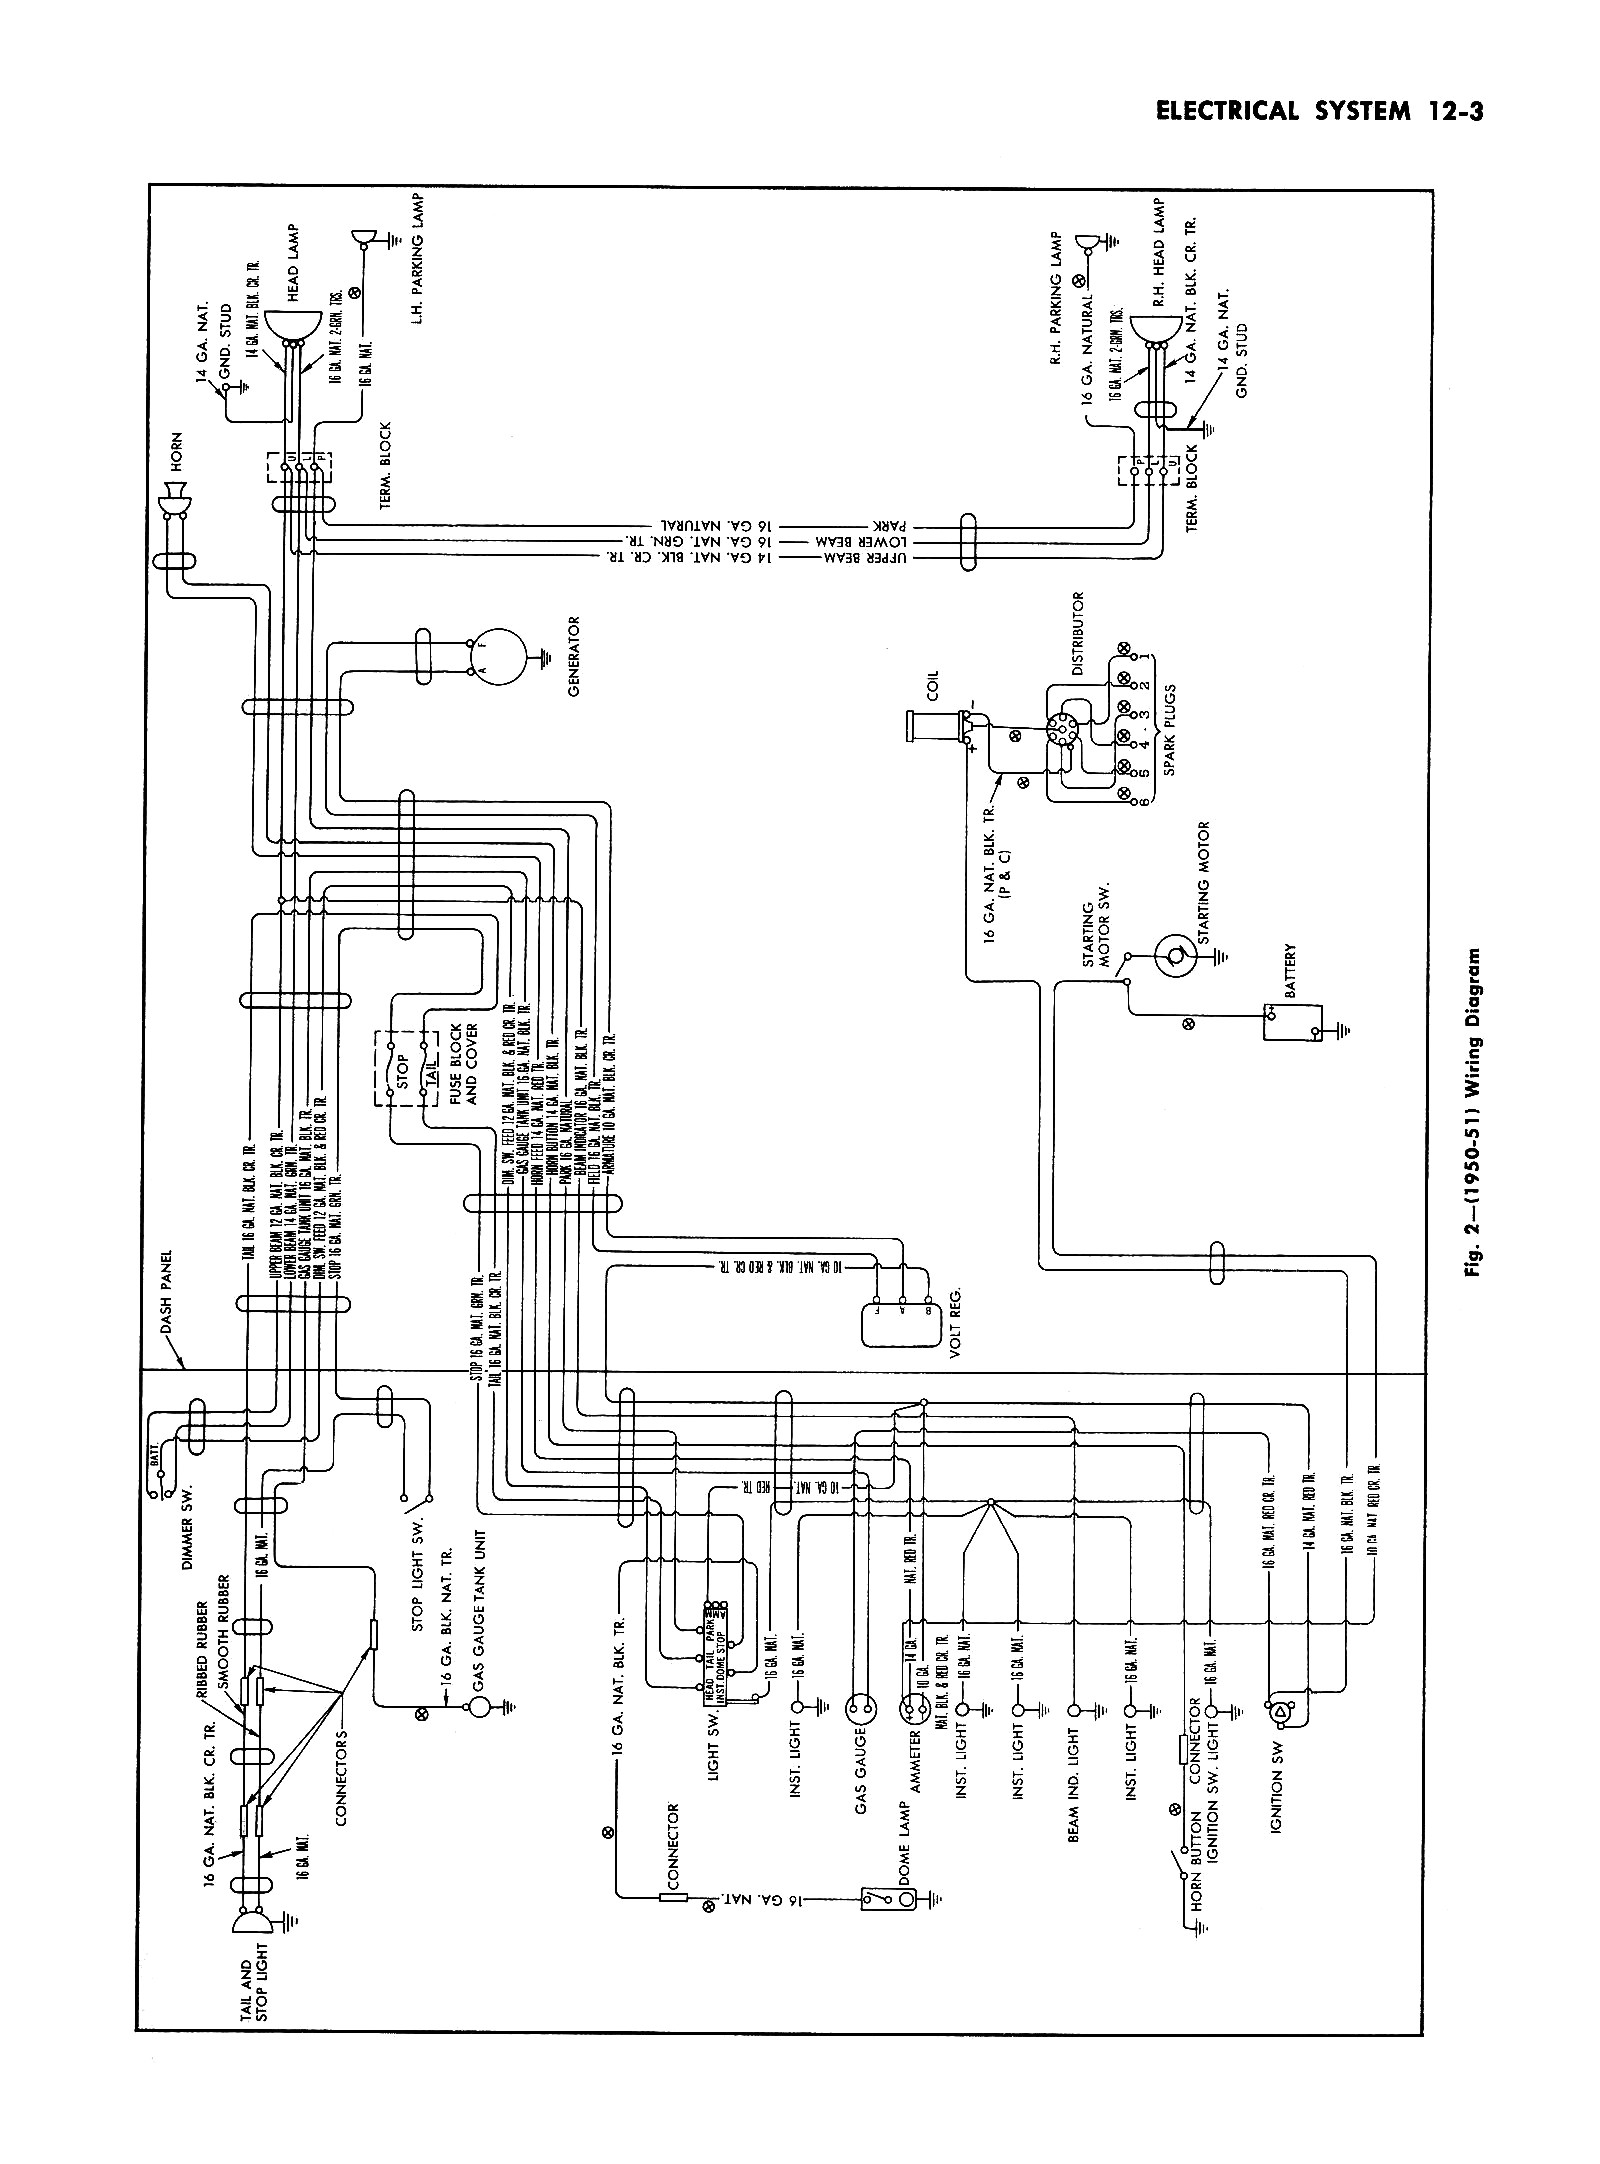 chevroletcar wiring diagram